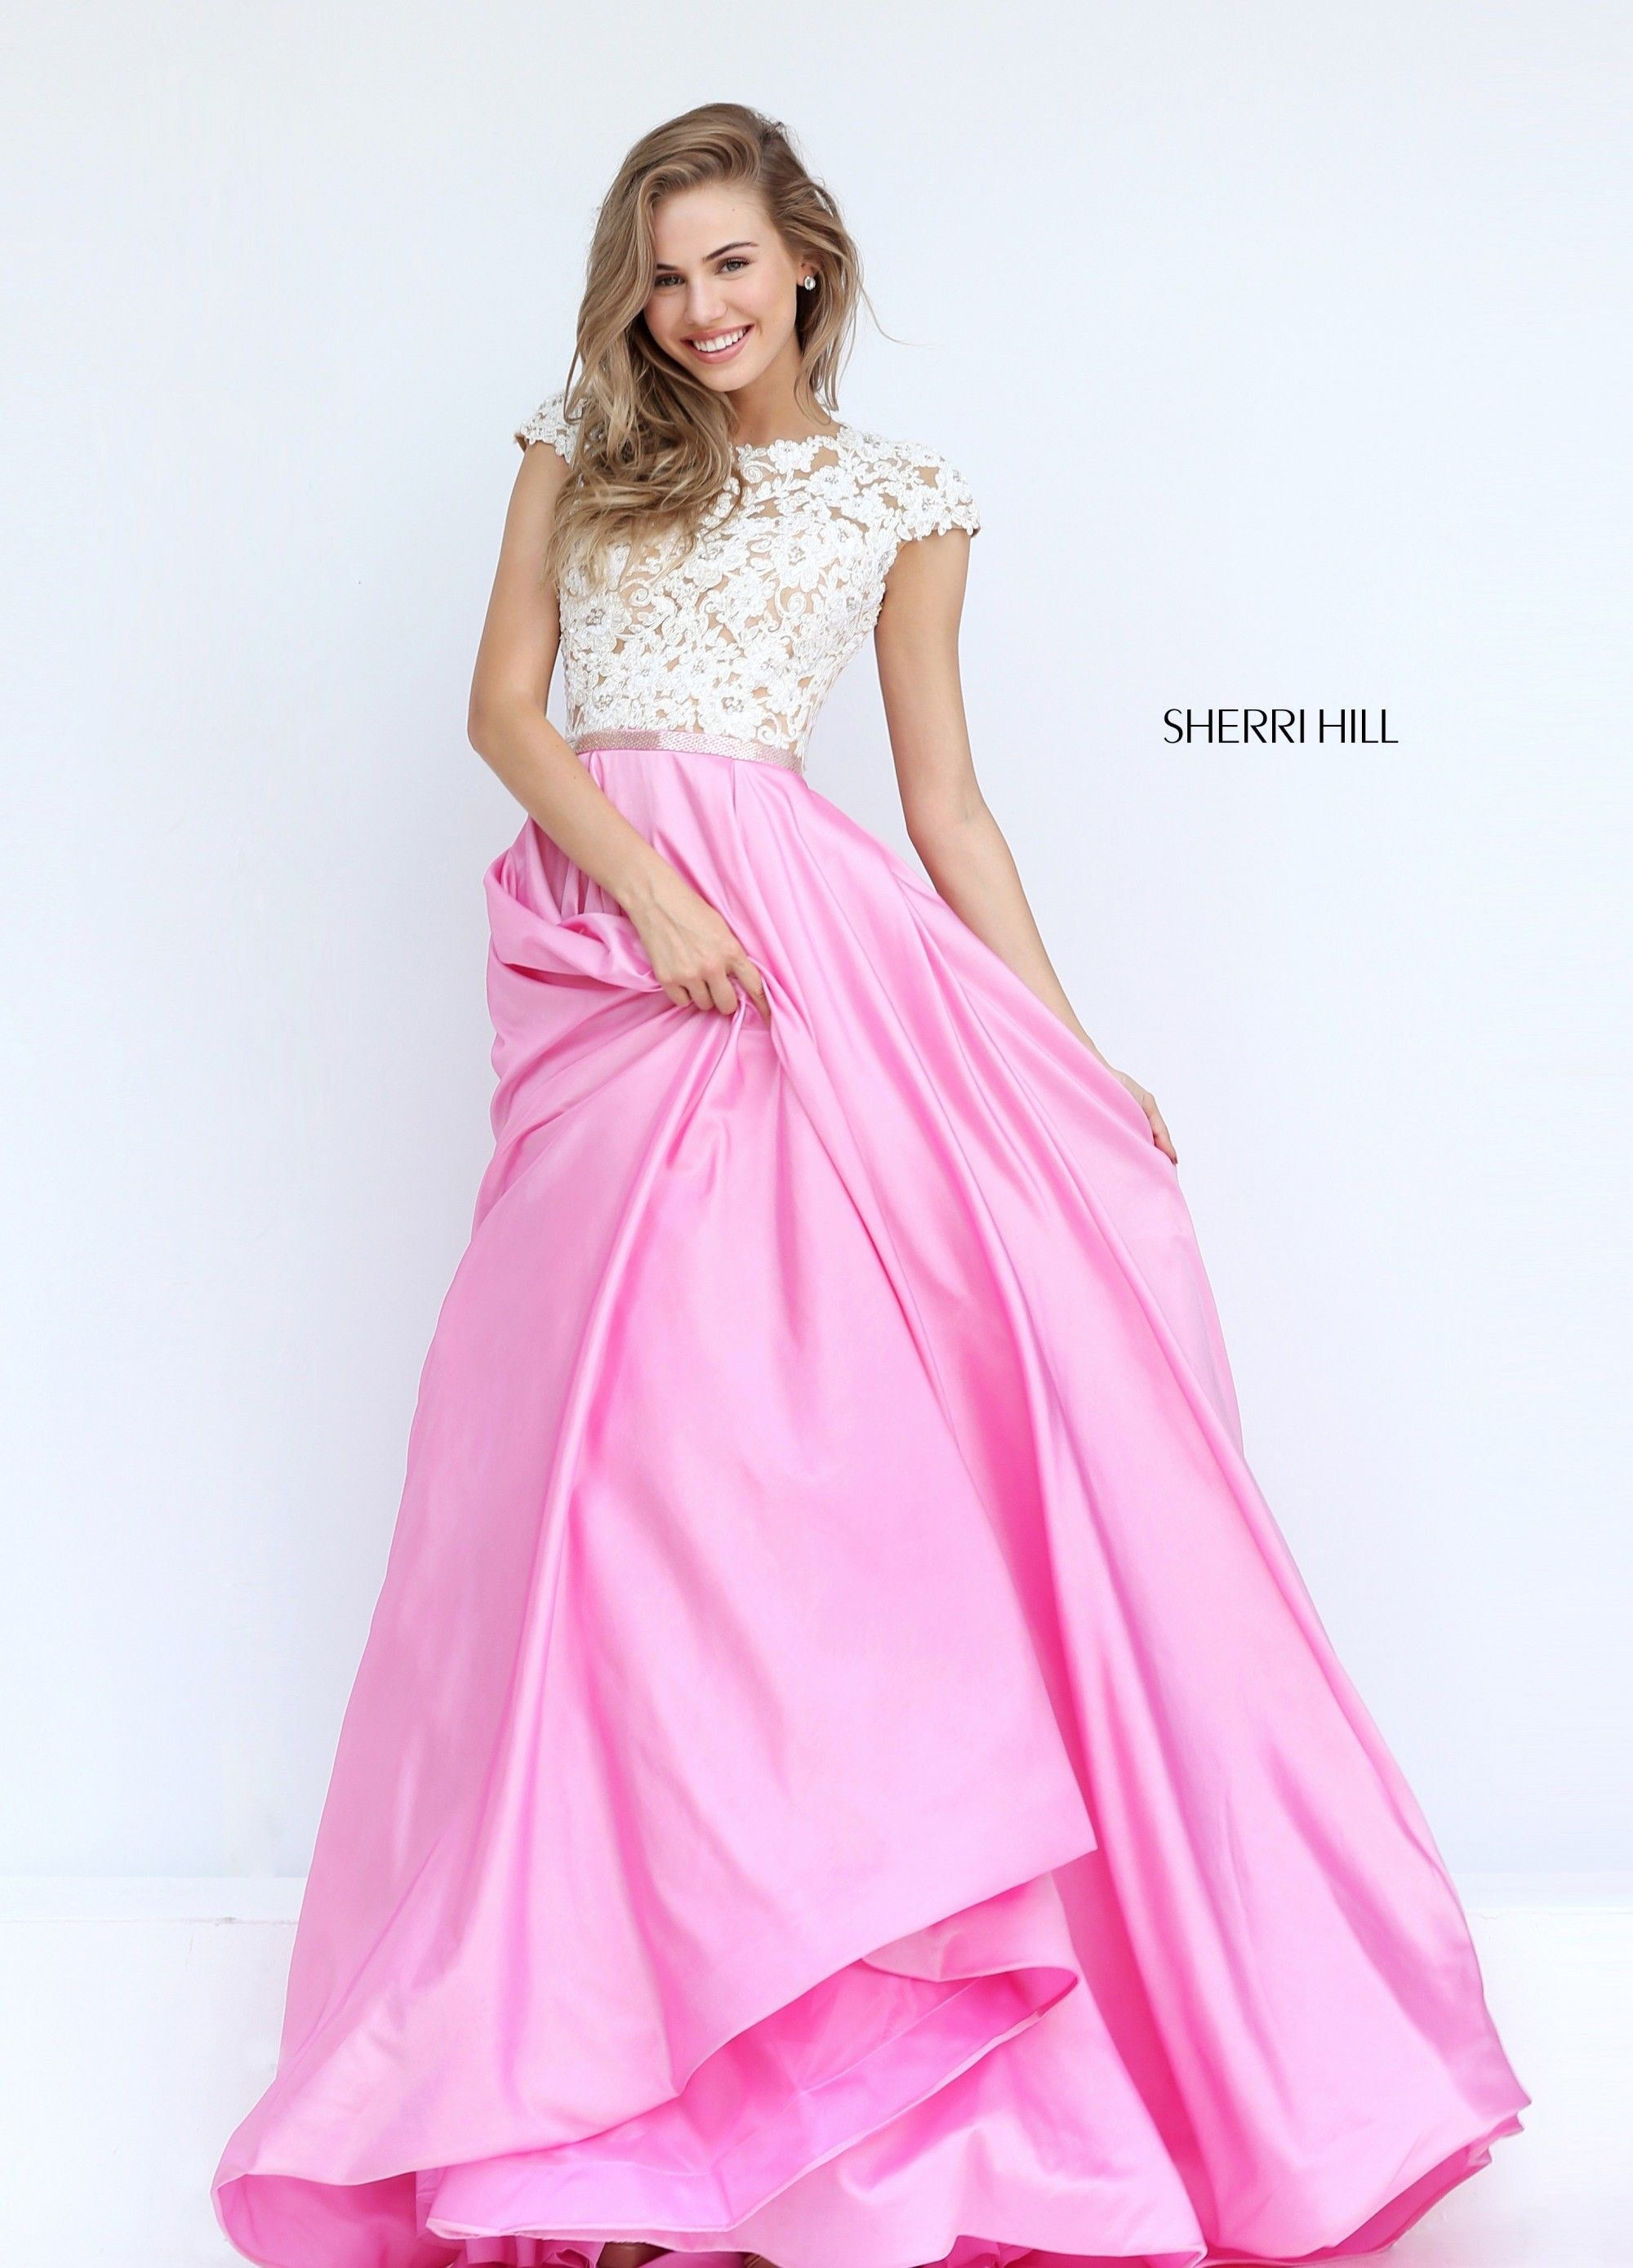 Sherri Hill 50843 Sherri Hill Miss Priss Prom and Pageant store, Lexington,  Kentucky, largest selection of Sherri Hill prom gowns